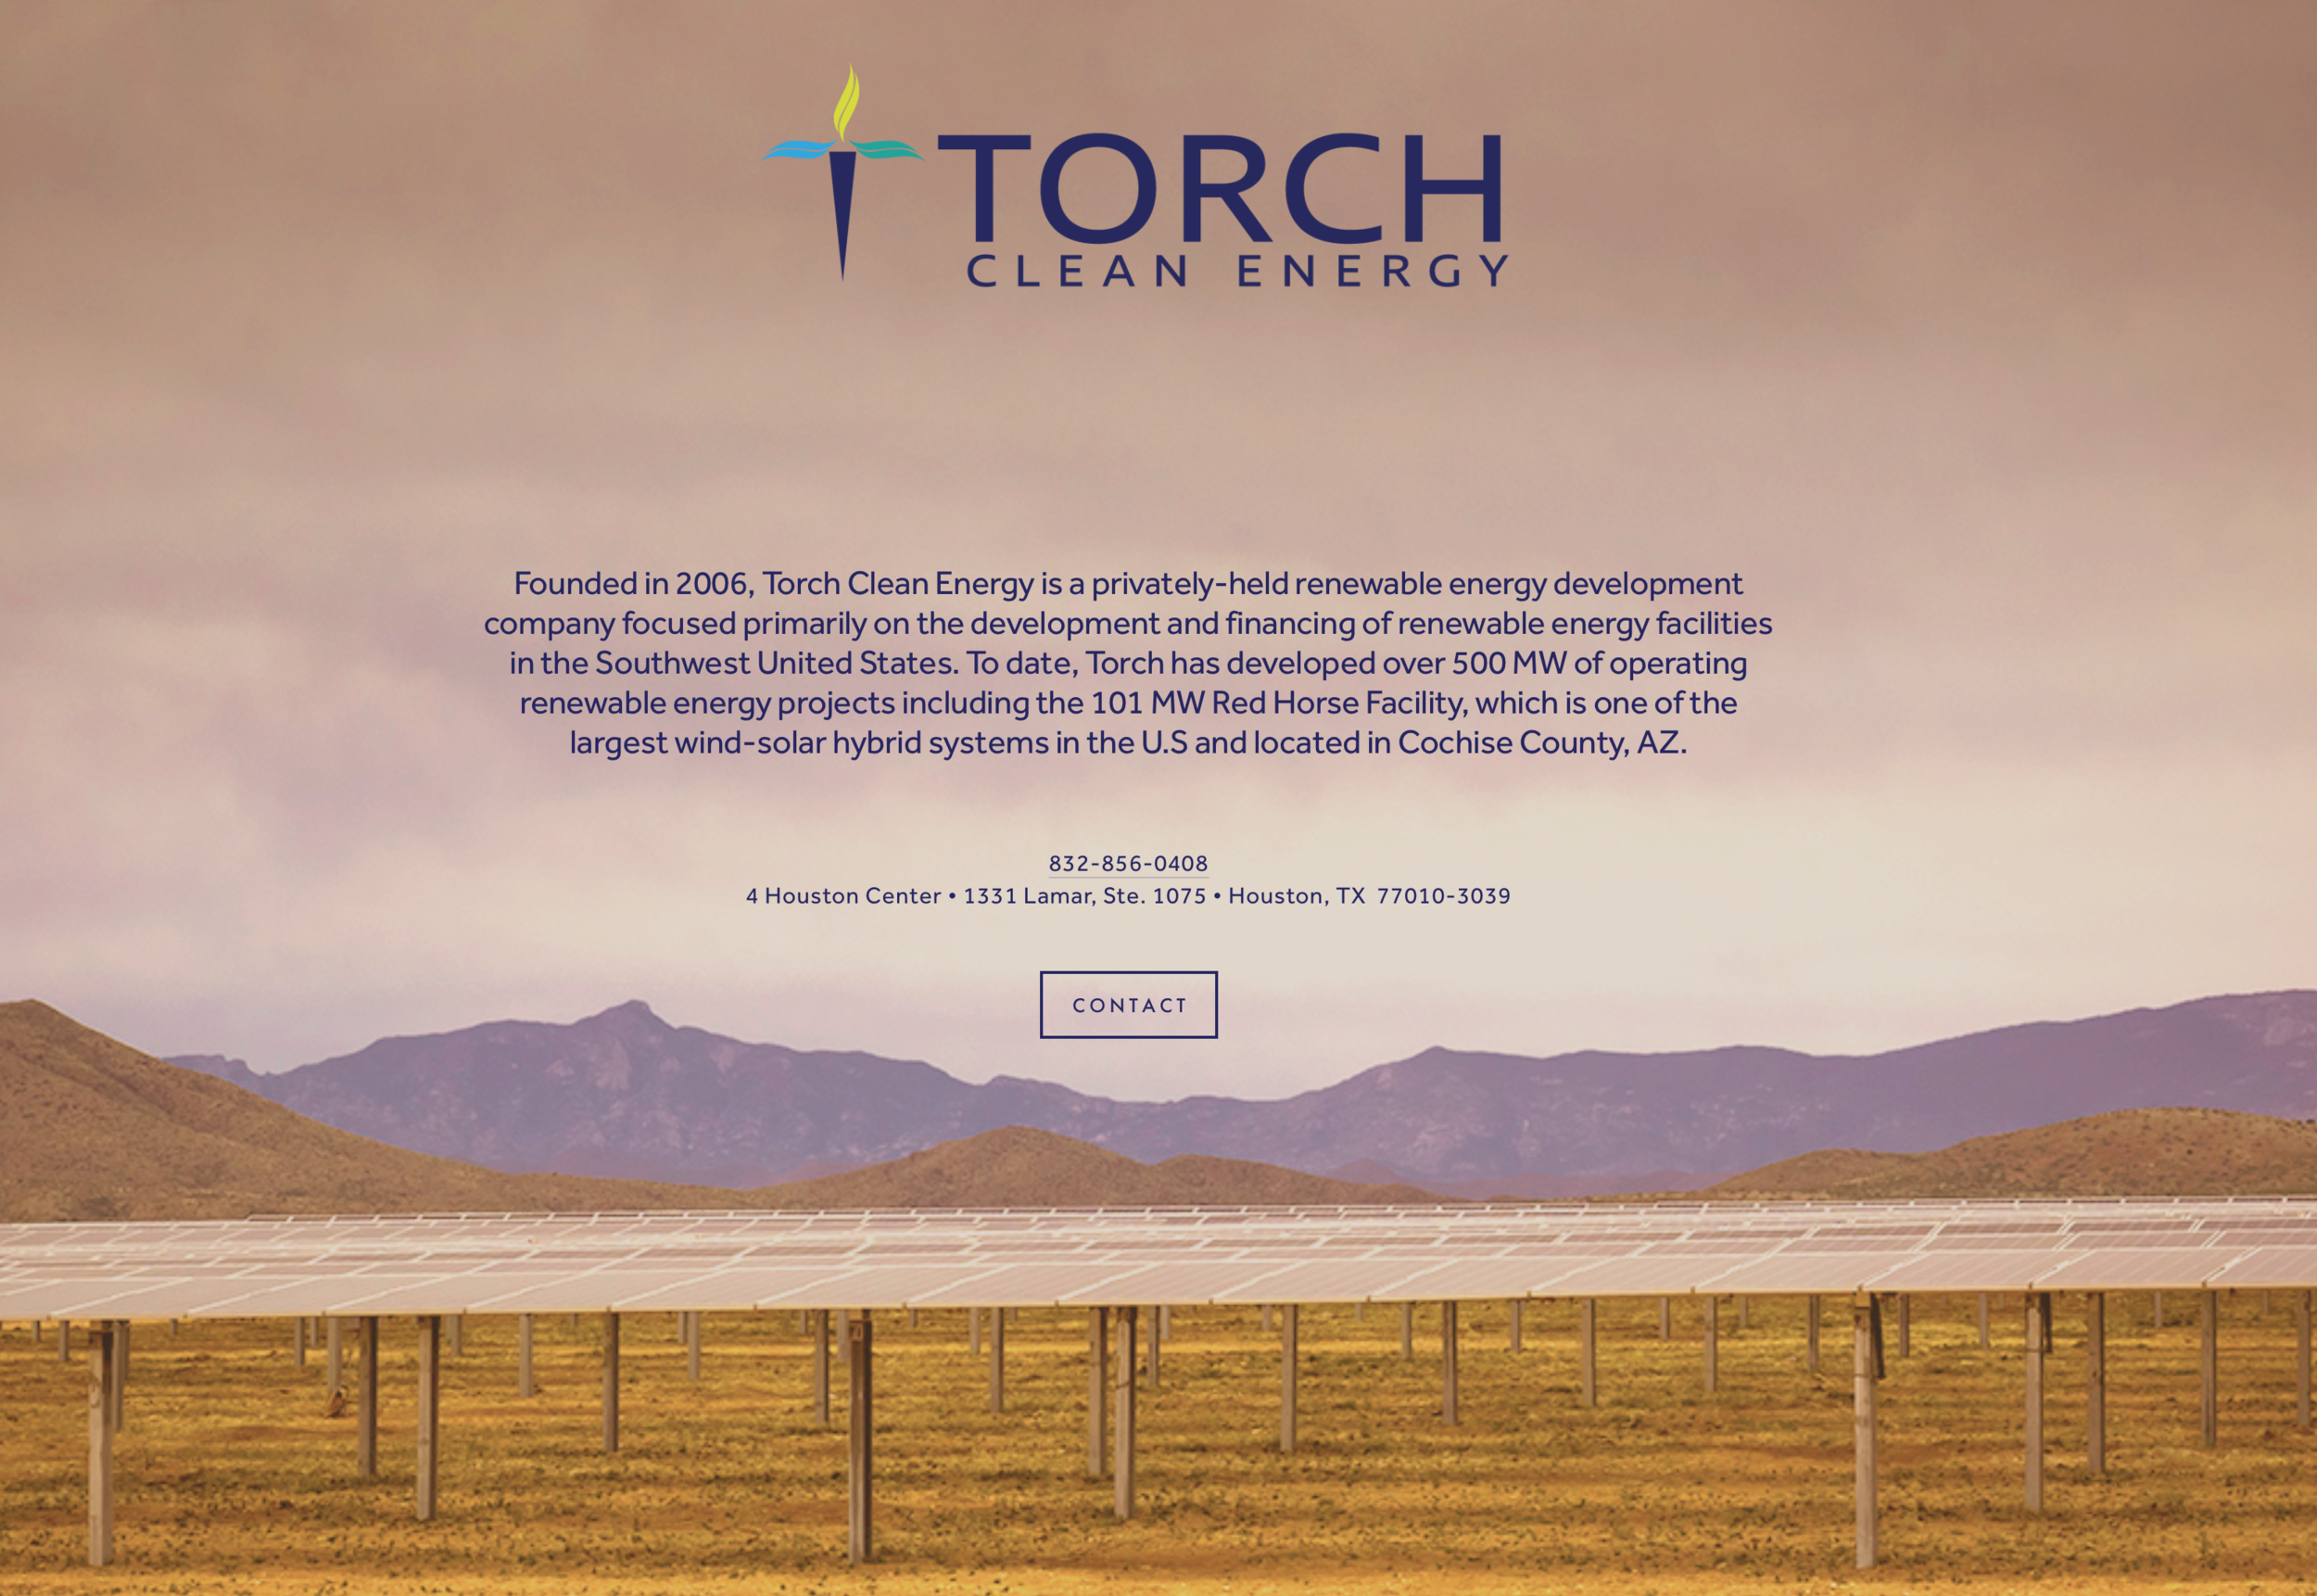 Placeholder Web Page for Torch Clean Energy